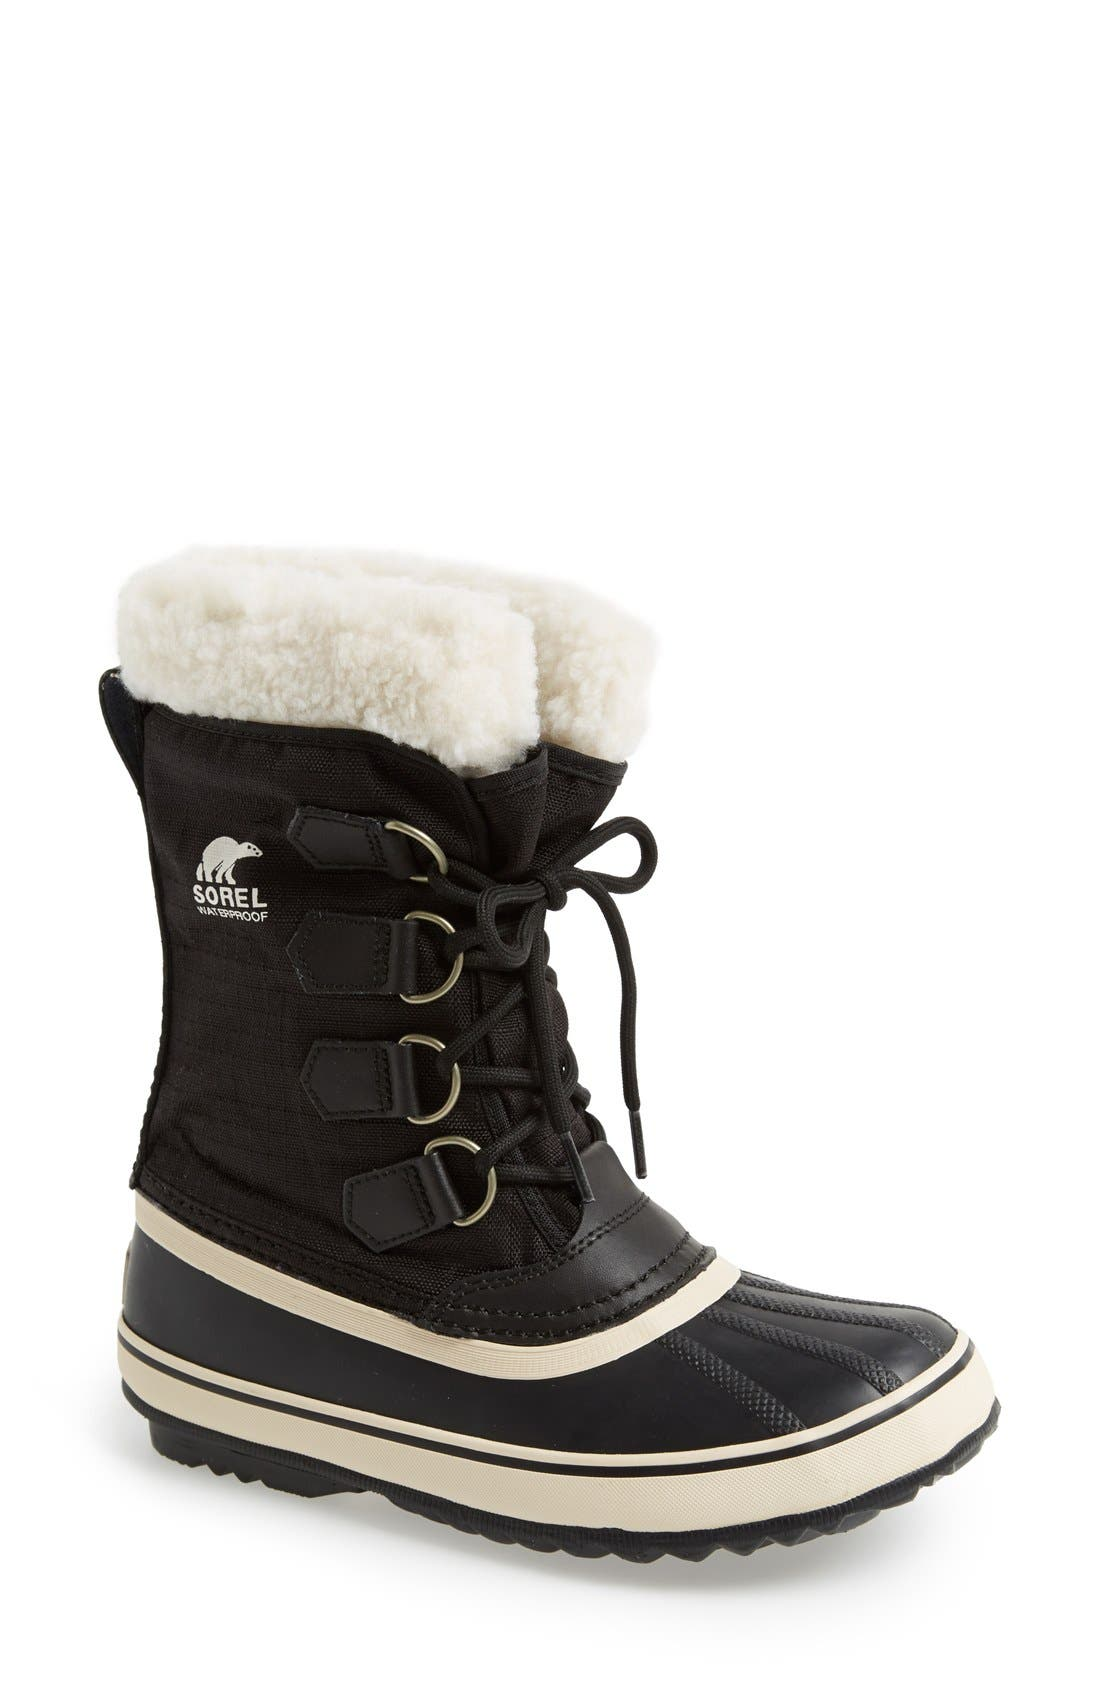 Main Image - SOREL 'Winter Carnival' Boot (Women)